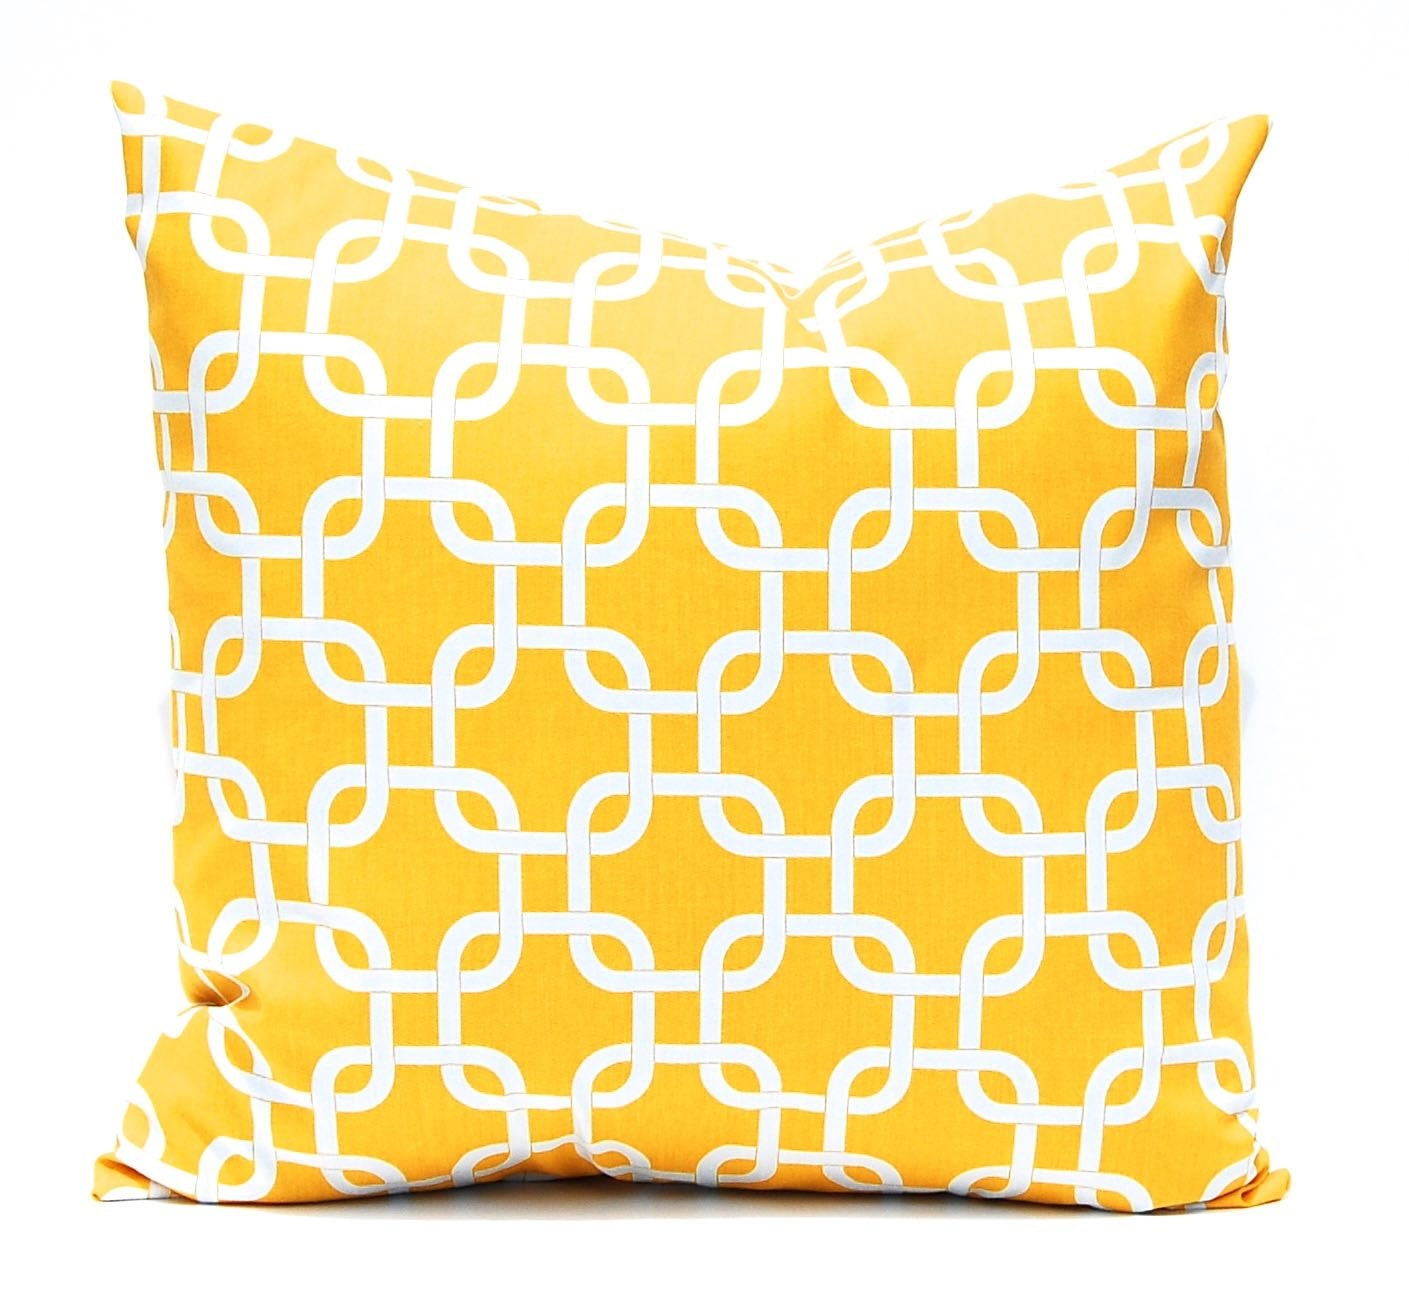 Throw Pillow Yellow : Yellow Pillows Yellow Throw Pillow Covers by CompanyTwentySix